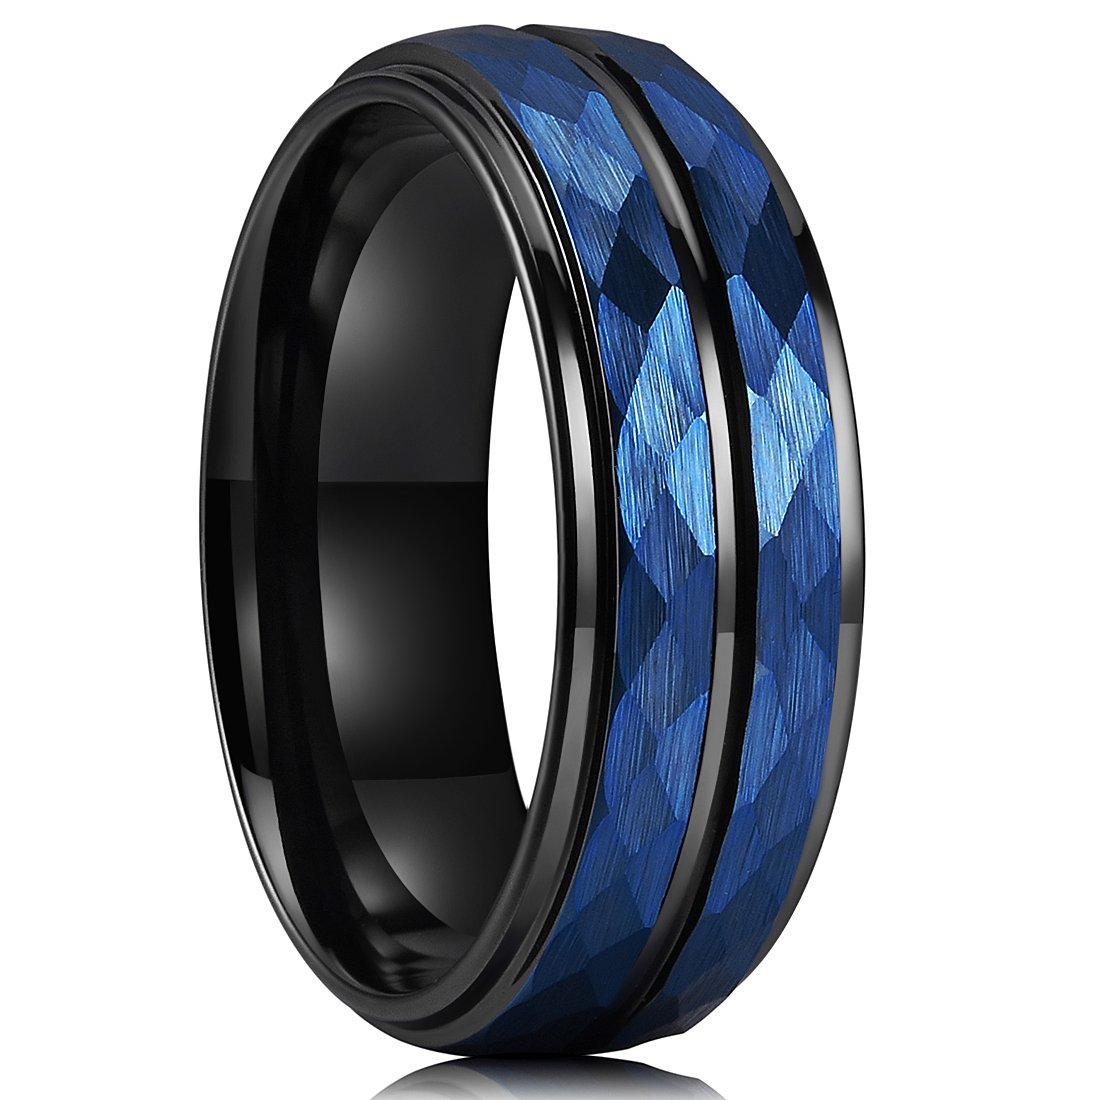 King Will HAMMER 8mm Blue Hammered Tungsten Carbide Ring Black Two Tone Wedding Band Groove Step Edge Comfort Fit(9.5)